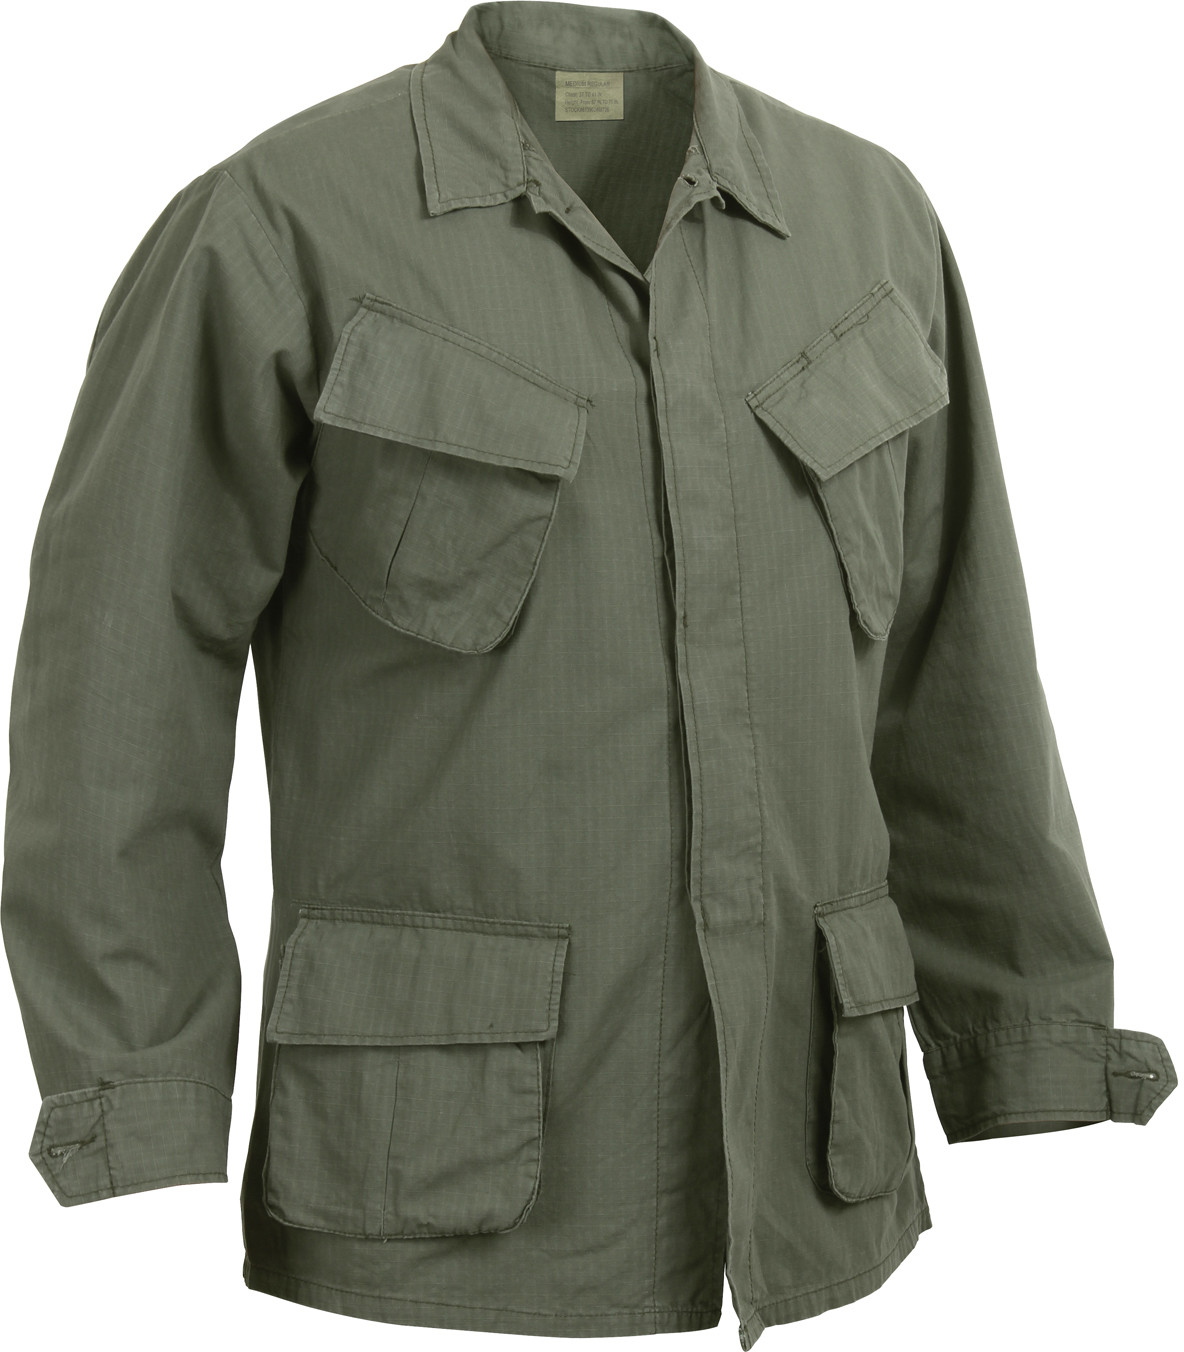 Olive Drab 100% Cotton Rip-Stop Vintage Vietnam Military BDU Fatigue Shirt 8b165cc9780